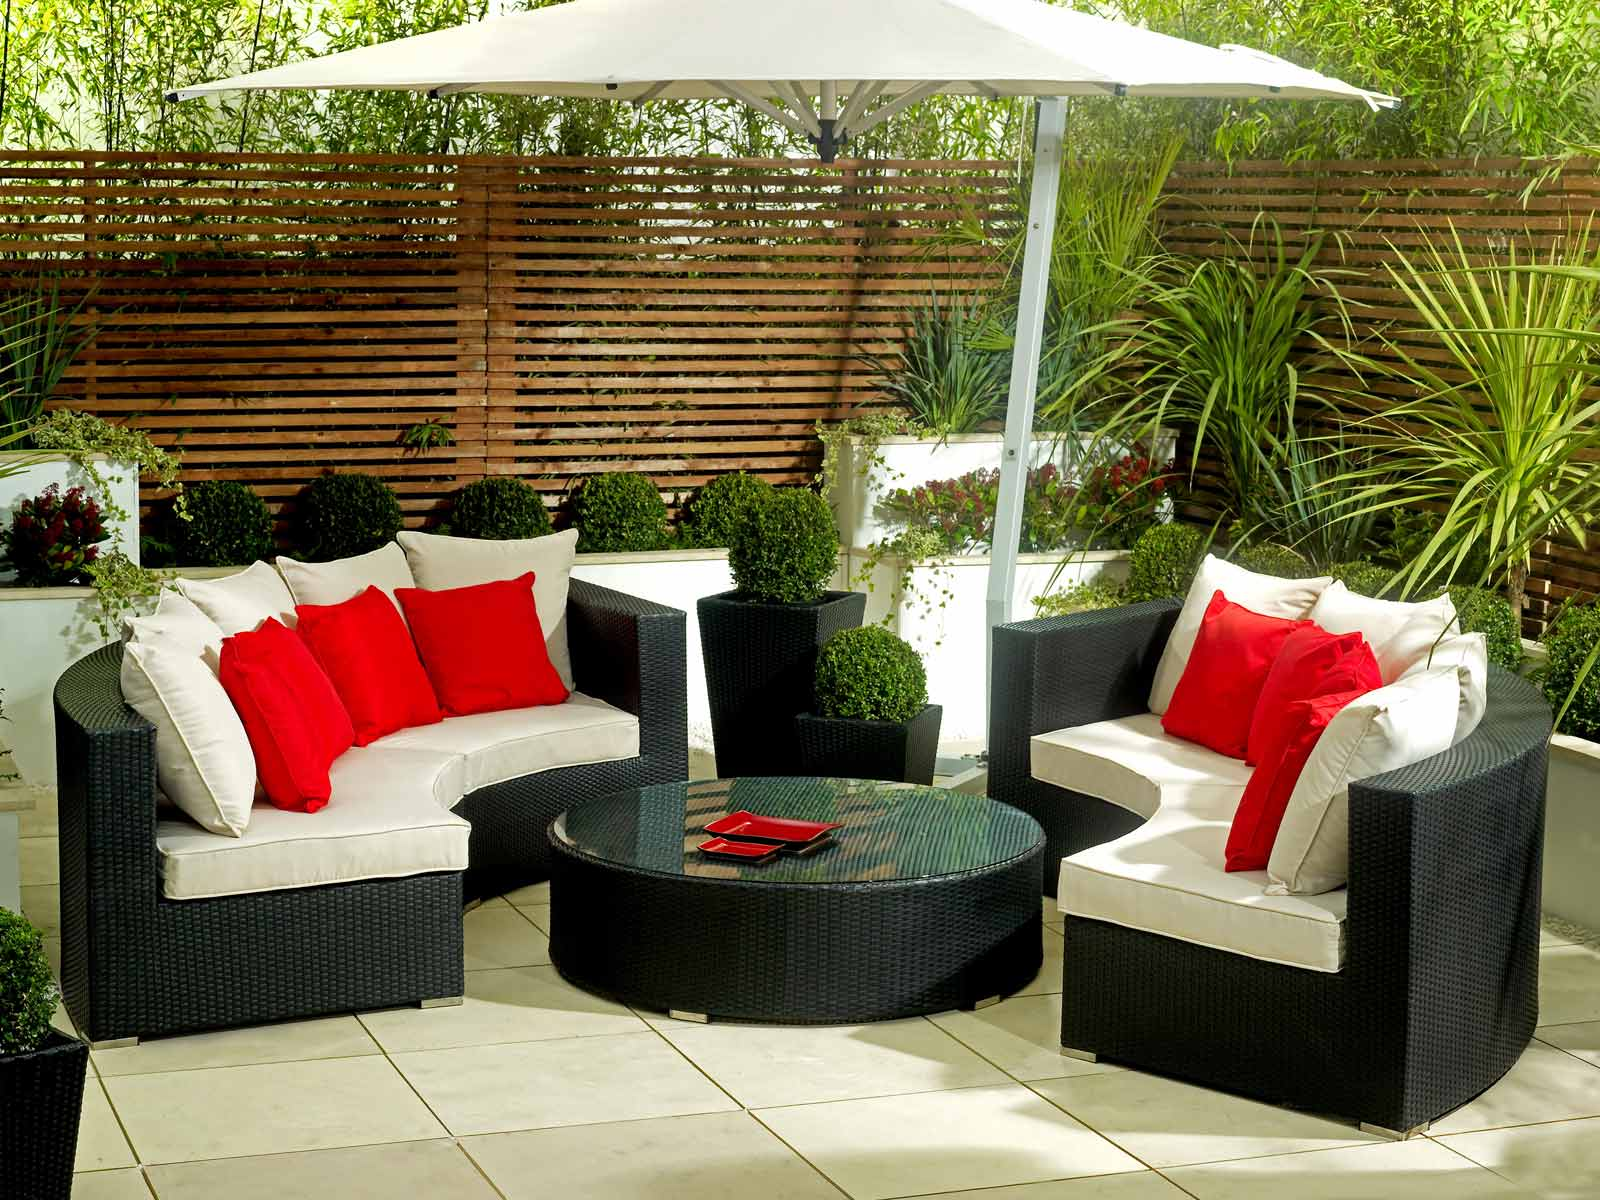 Furniture store sweet home furniture stores Home and garden furniture